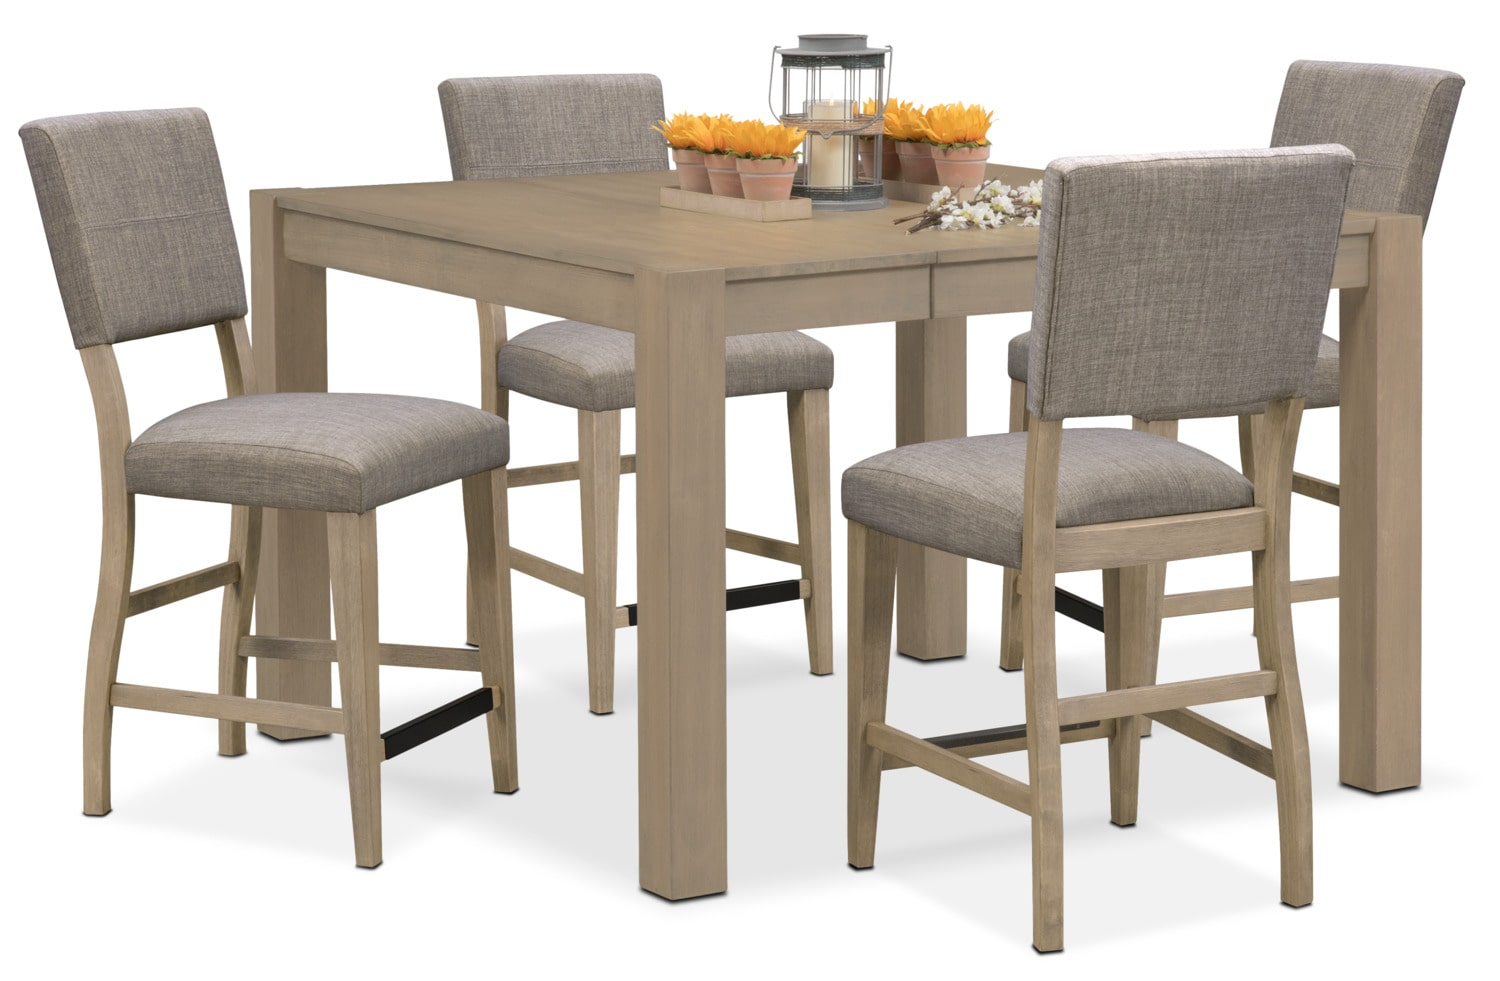 Tribeca counter height table and upholstered side chairs